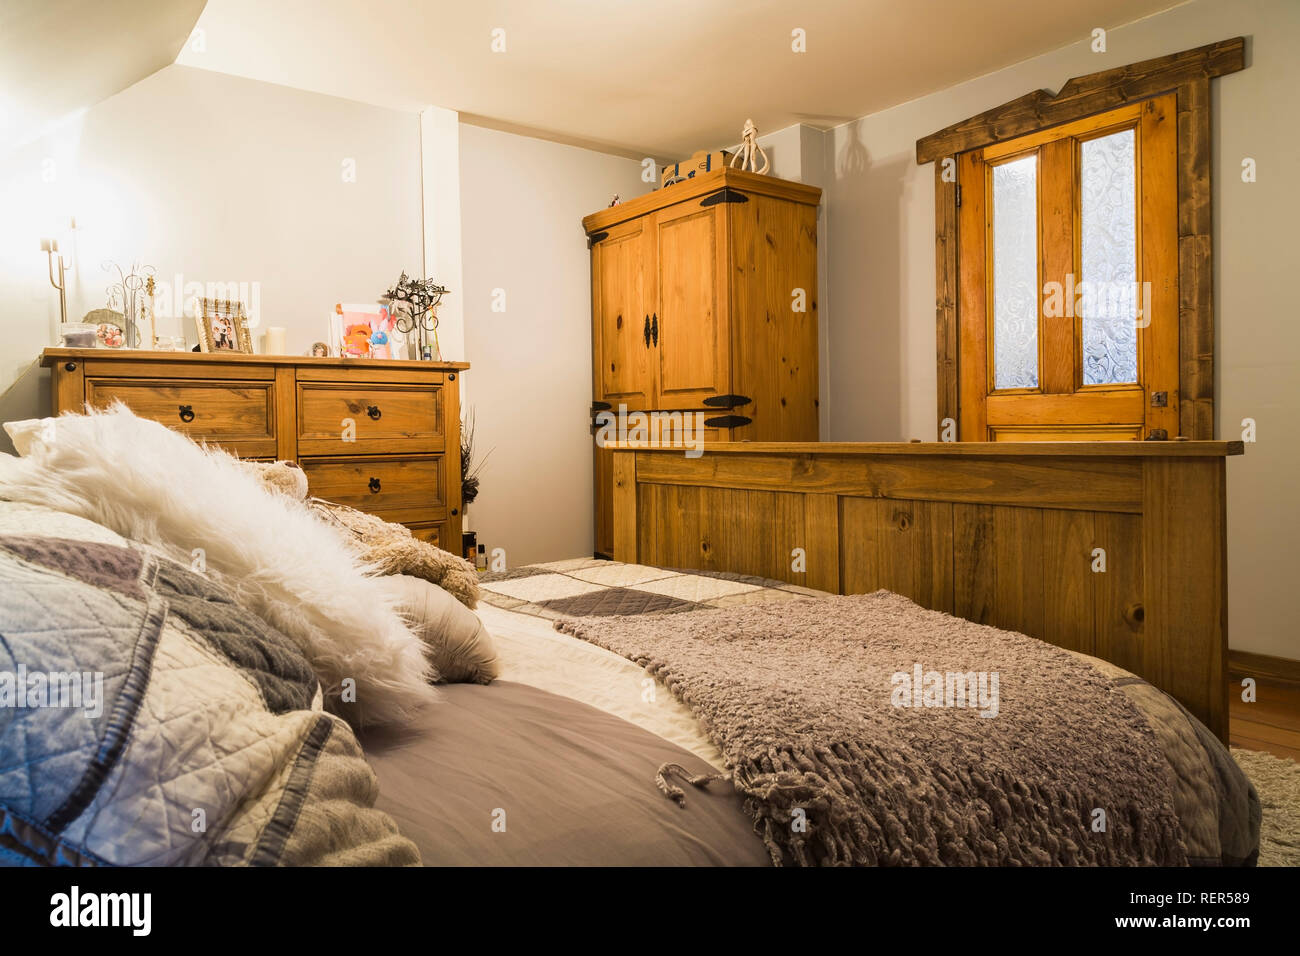 Queen size bed with pinewood footboard, dresser and armoire in upstairs master bedroom inside an old 1839 Canadiana cottage style home - Stock Image